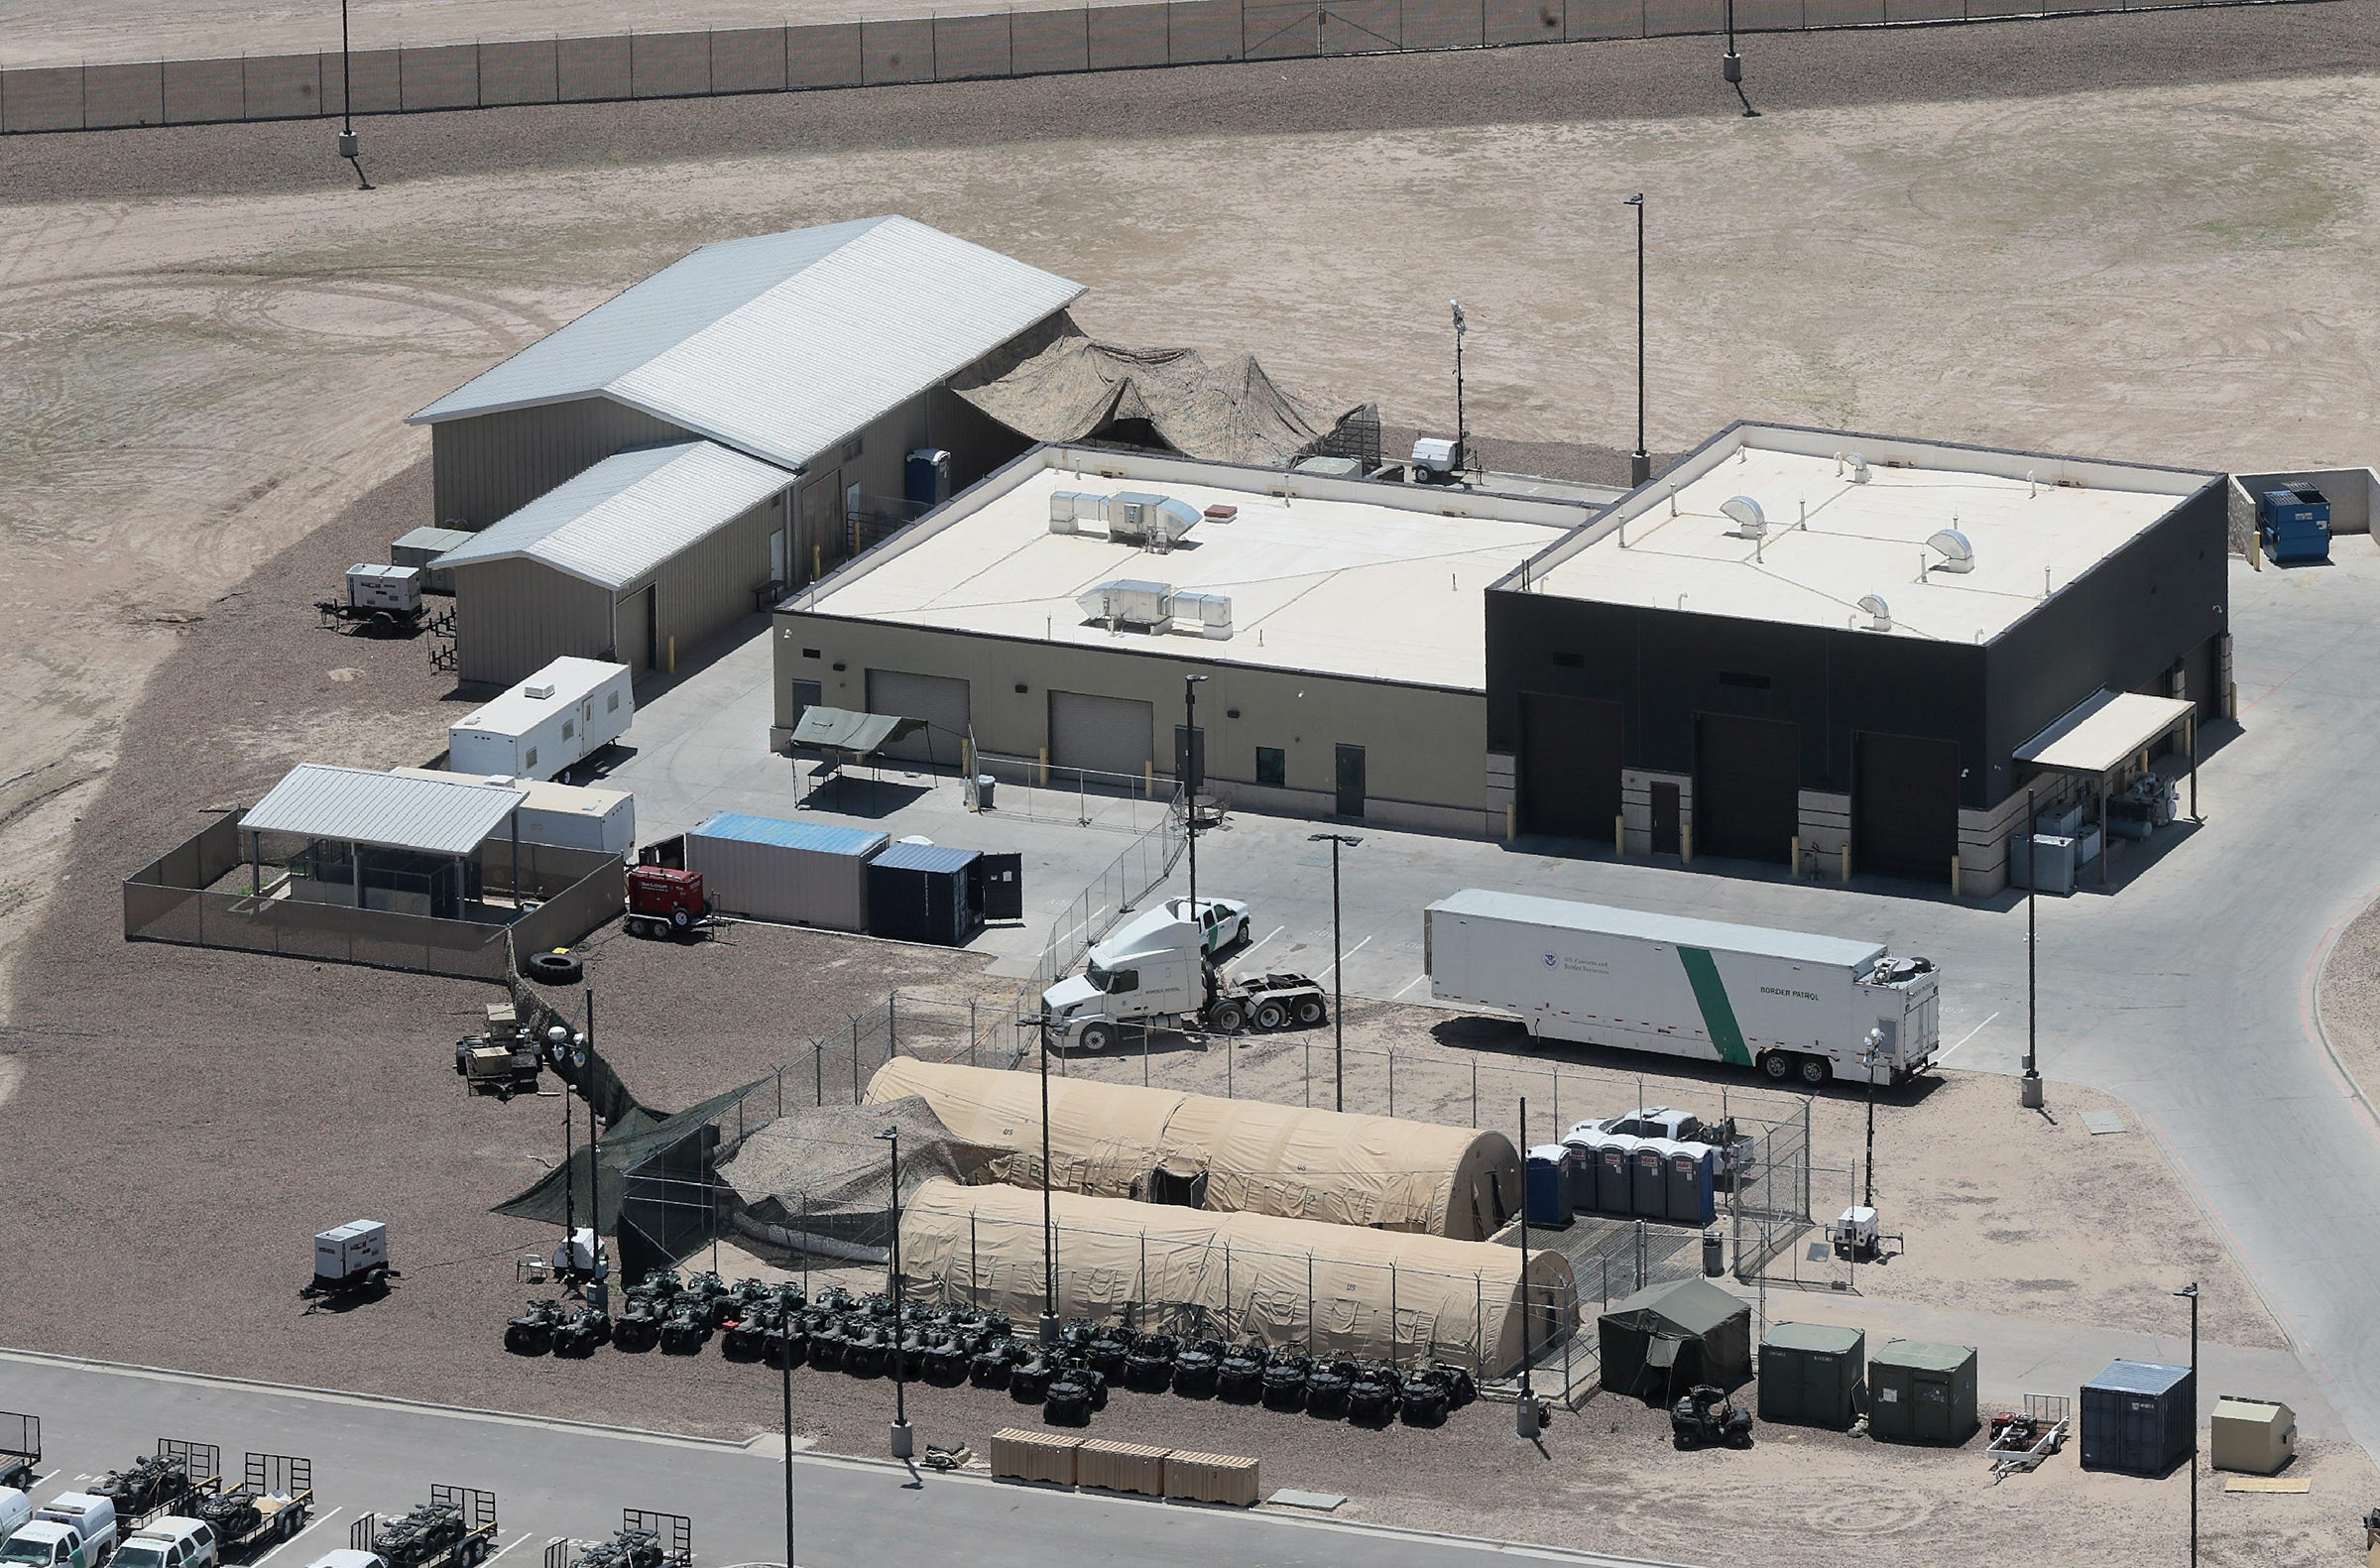 The Border Patrol Station in Clint, Texas, is being used to house unaccompanied migrant children